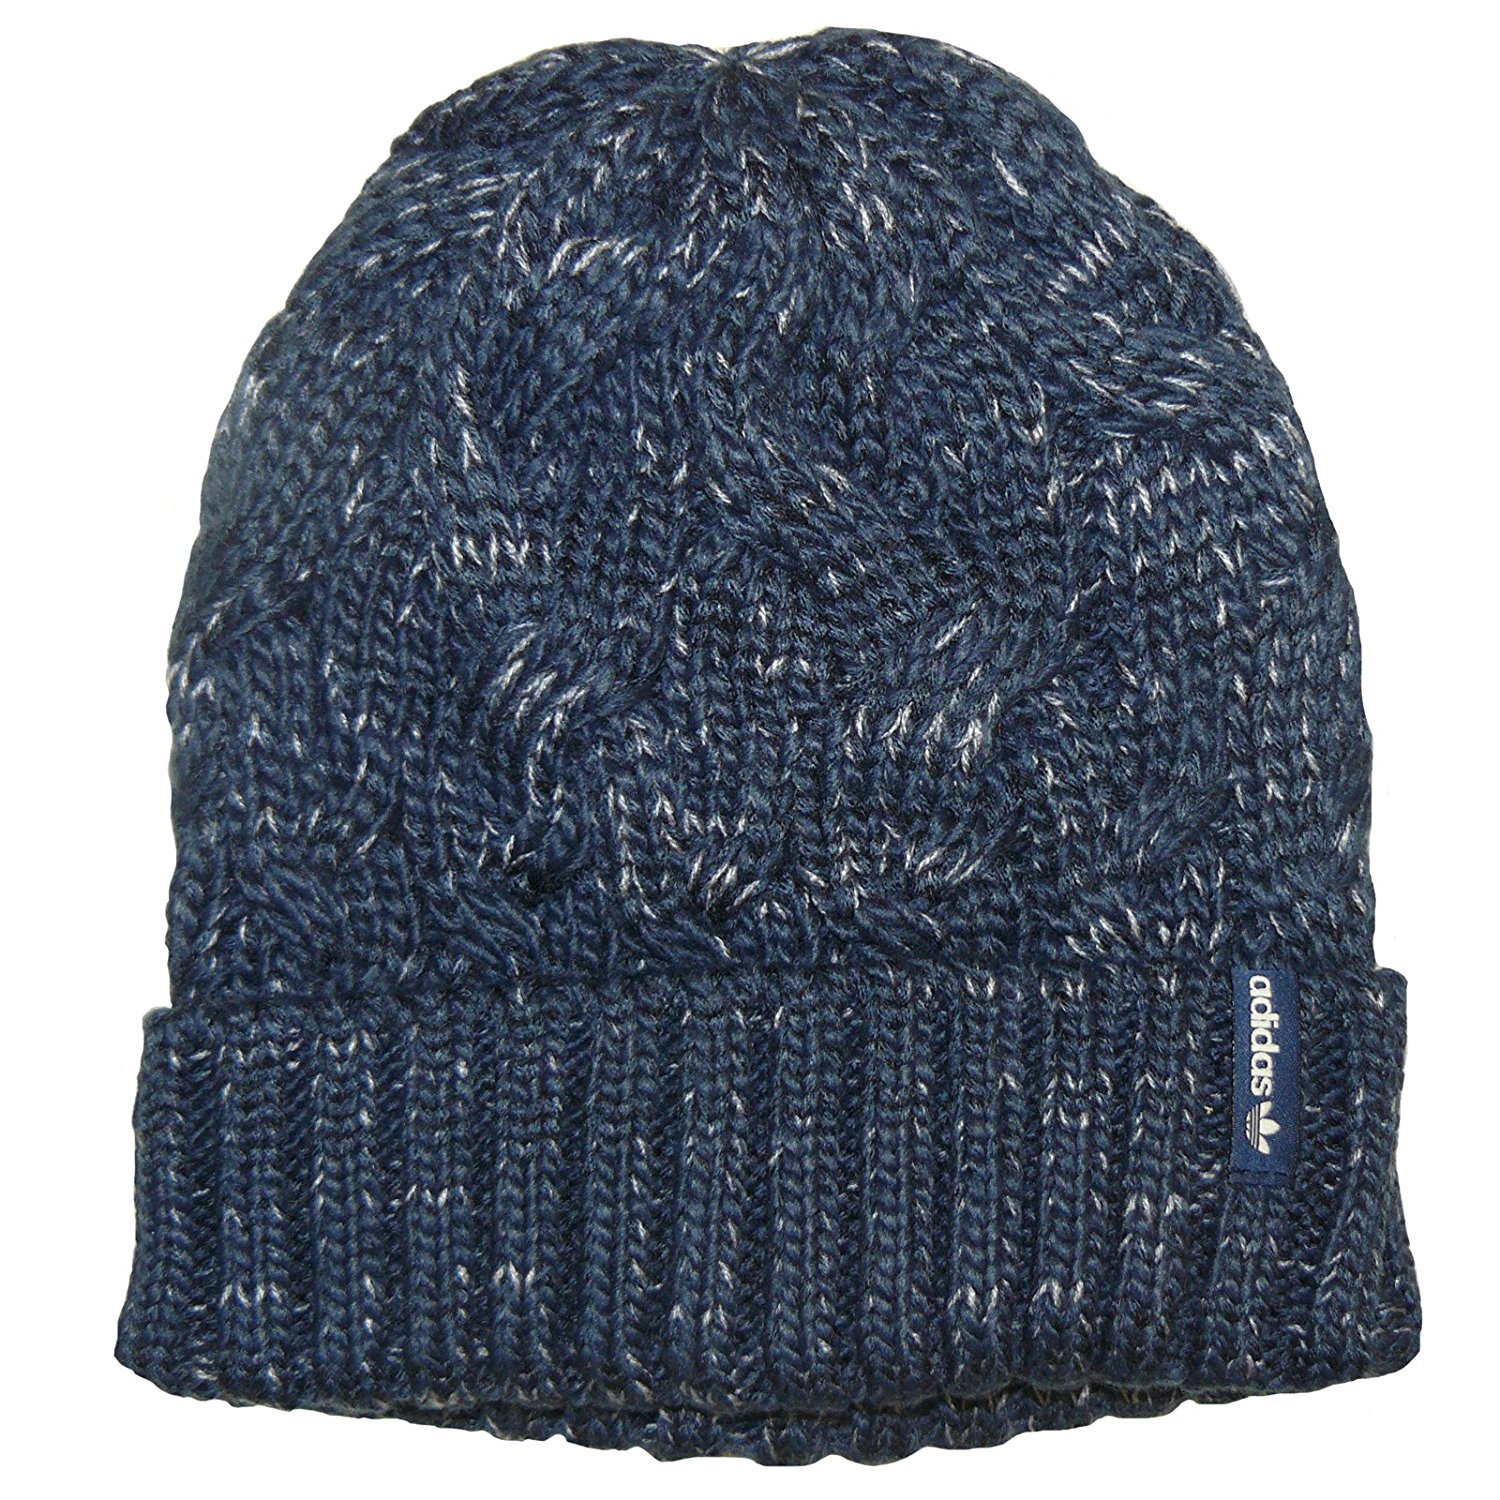 19613b97362 Buy Adidas Womens Golf Beanies for Lowest Prices Online!